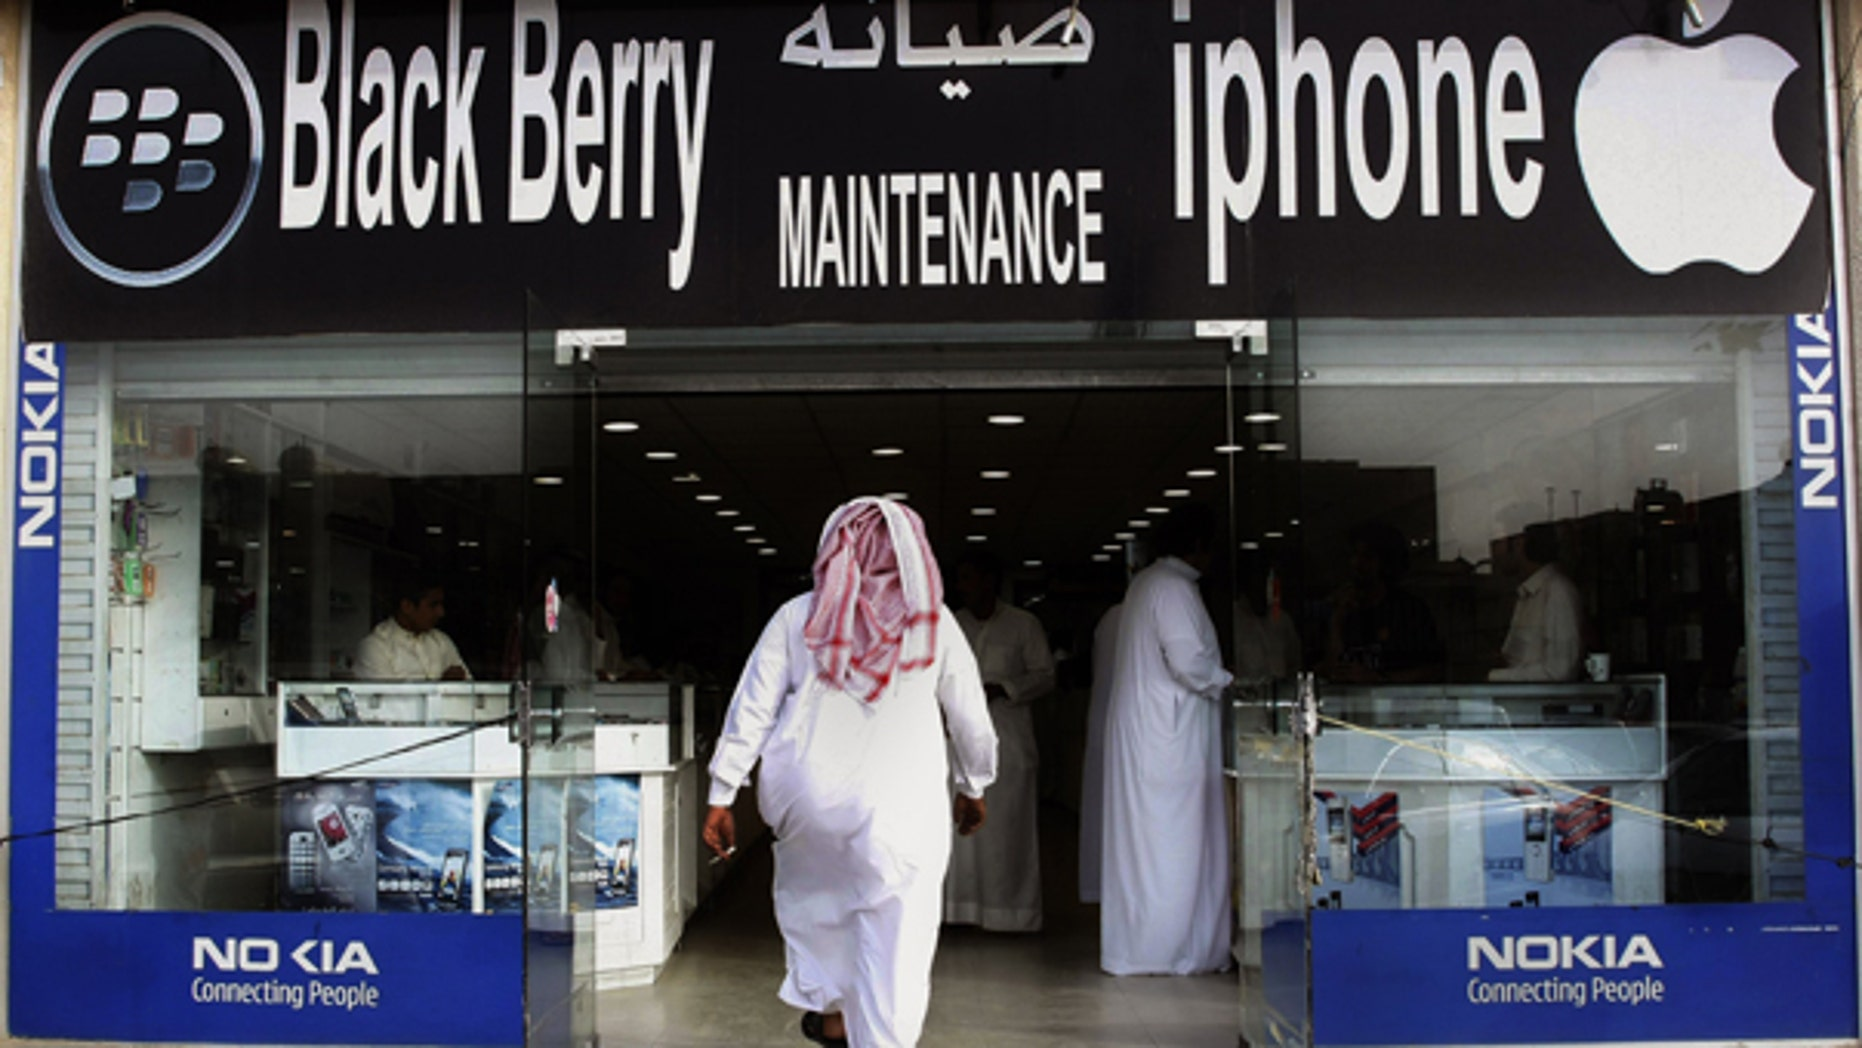 Aug. 5: A Saudi man enters a mobile shop at a market in the capital Riyadh, Saudi Arabia. Saudi and Emirati authorities' battle with BlackBerry manufacturer Research in Motion shows how rapid changes in technology are sowing unease in countries where the unfettered flow of data is seen as a threat.